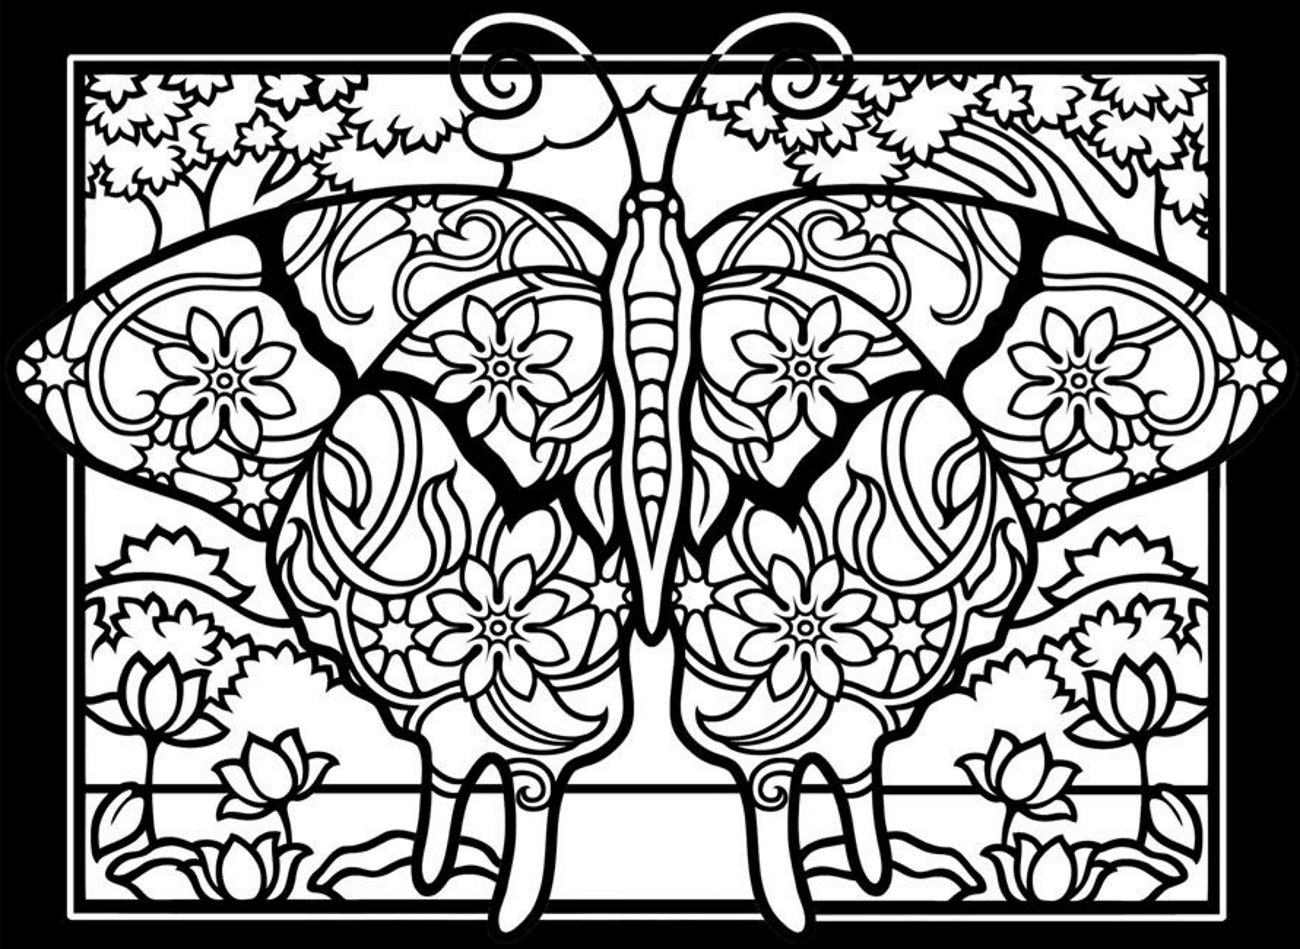 Difficult butterfly coloring pages - Coloring Adult Difficult Butterflies Black Background Free To Print